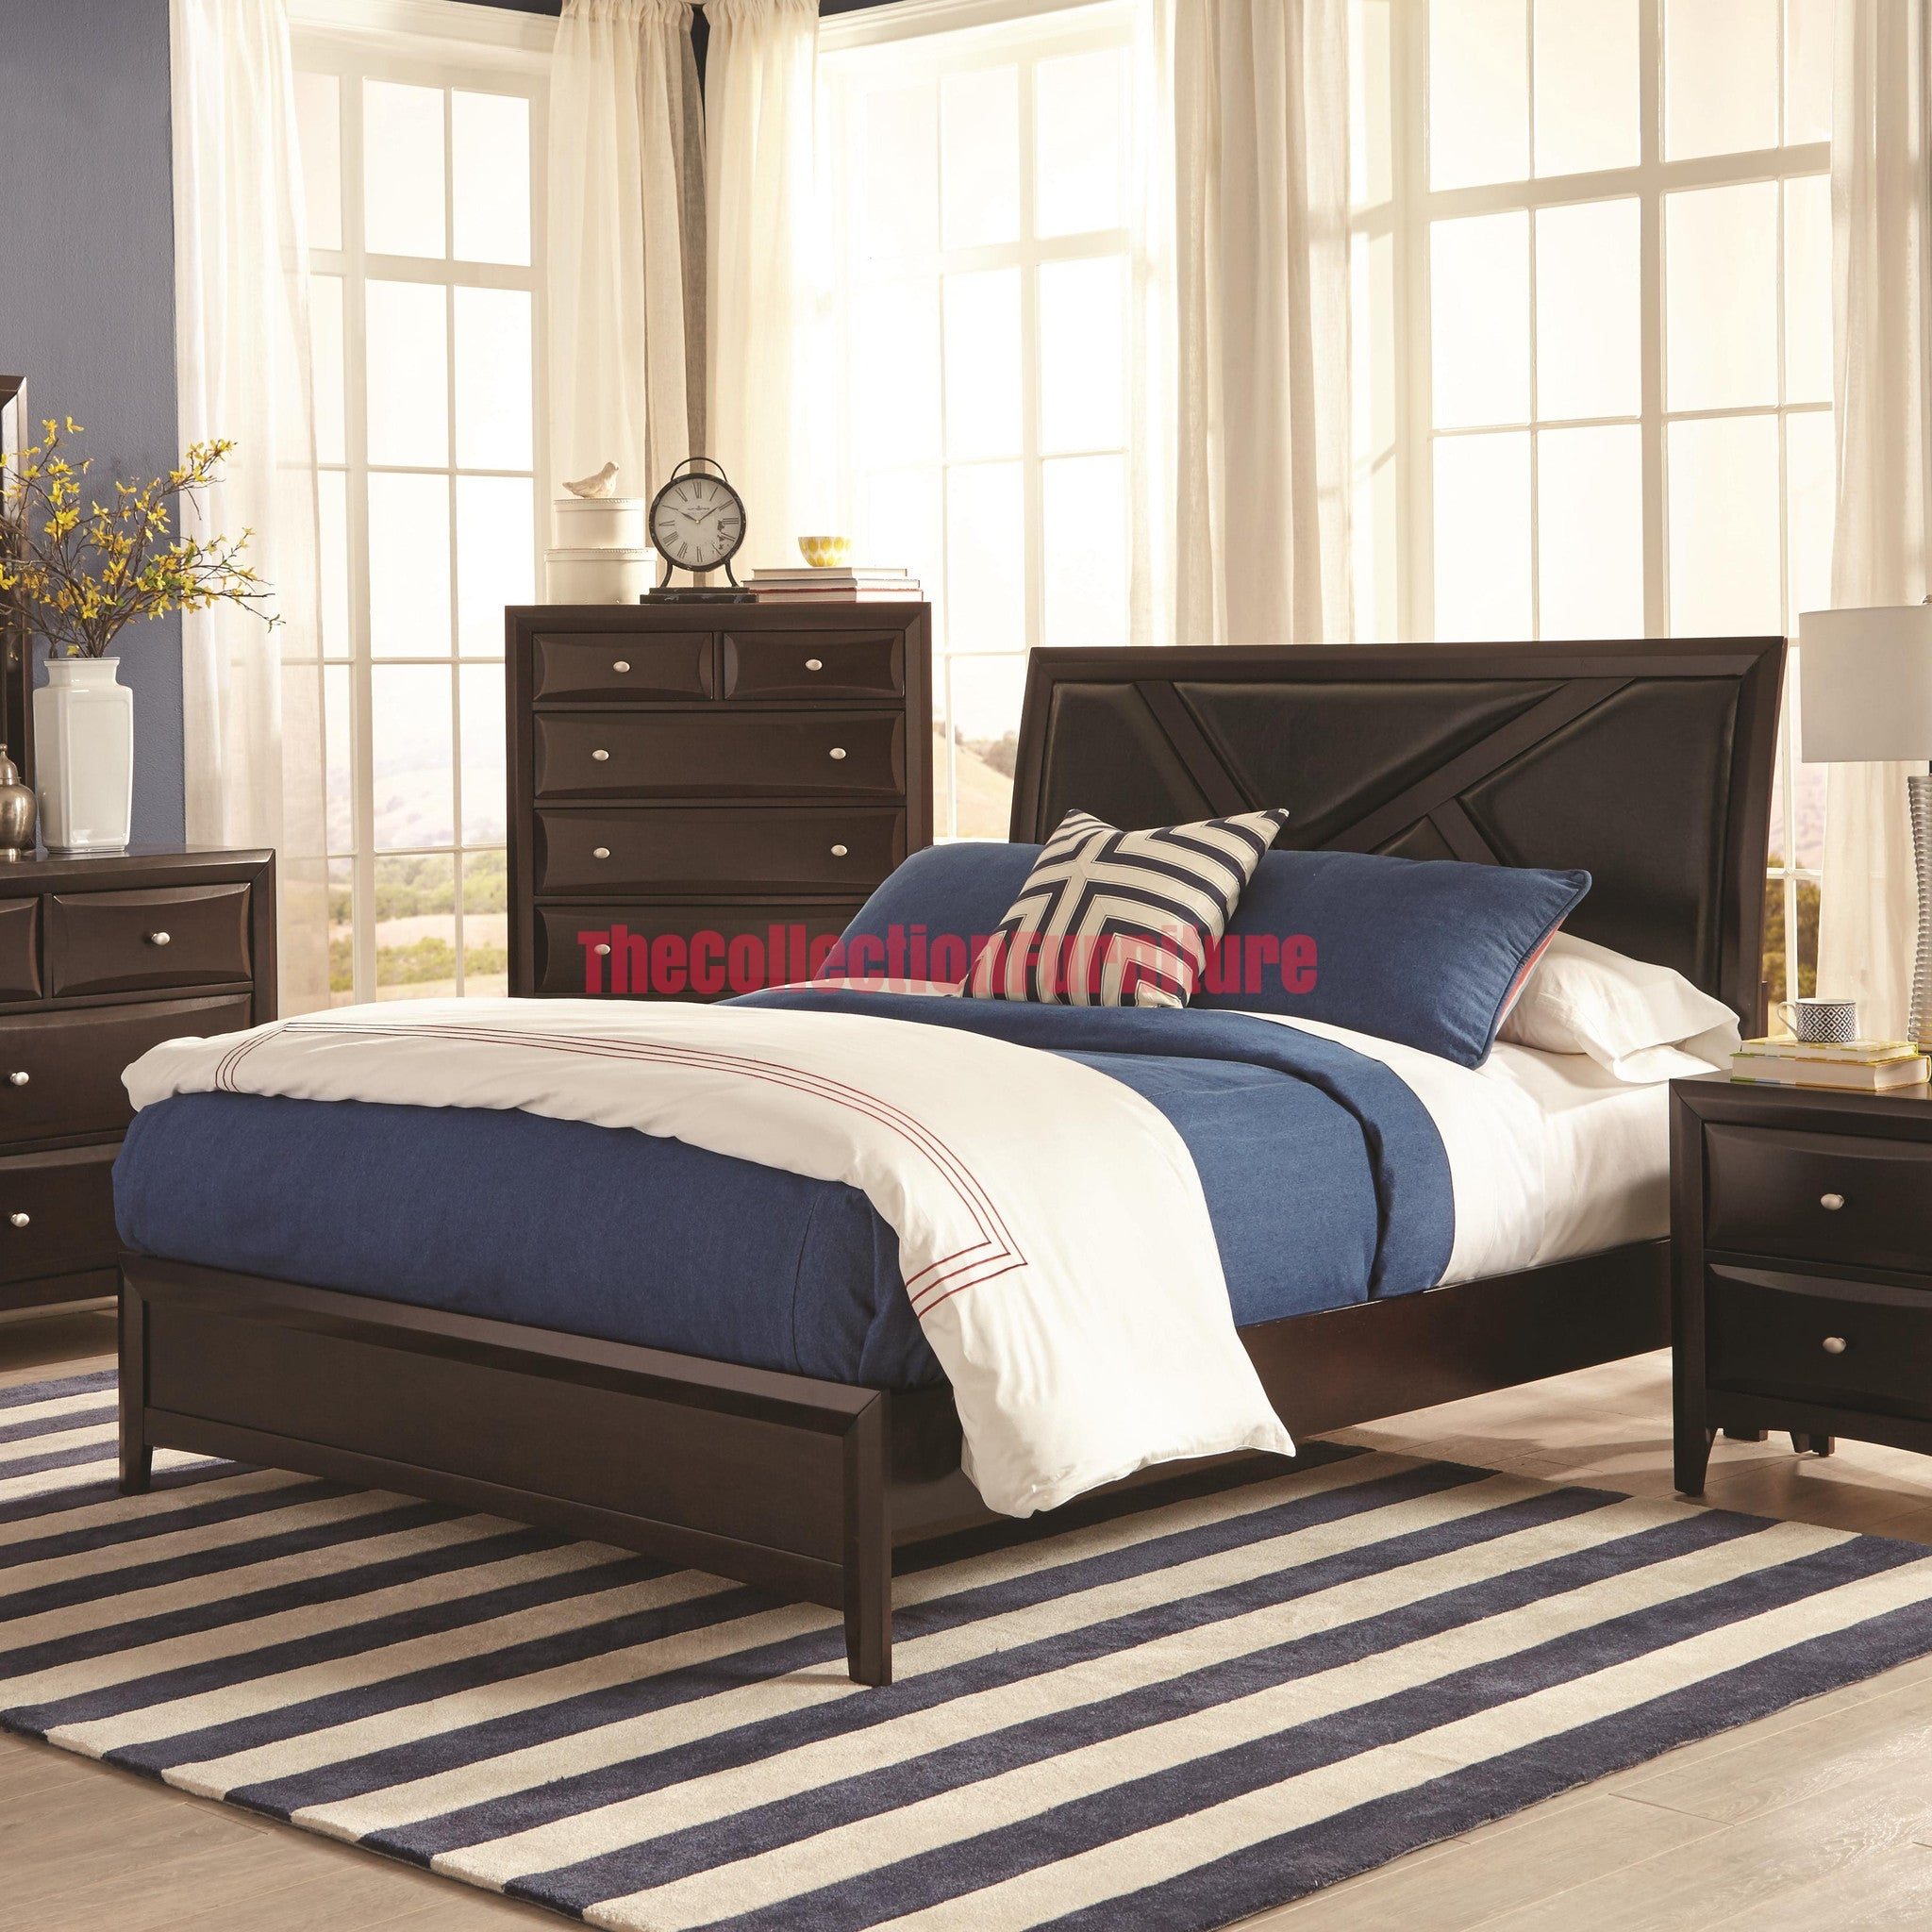 Rossville 4 piece bedroom set the collection furniture for Bedroom 4 piece set